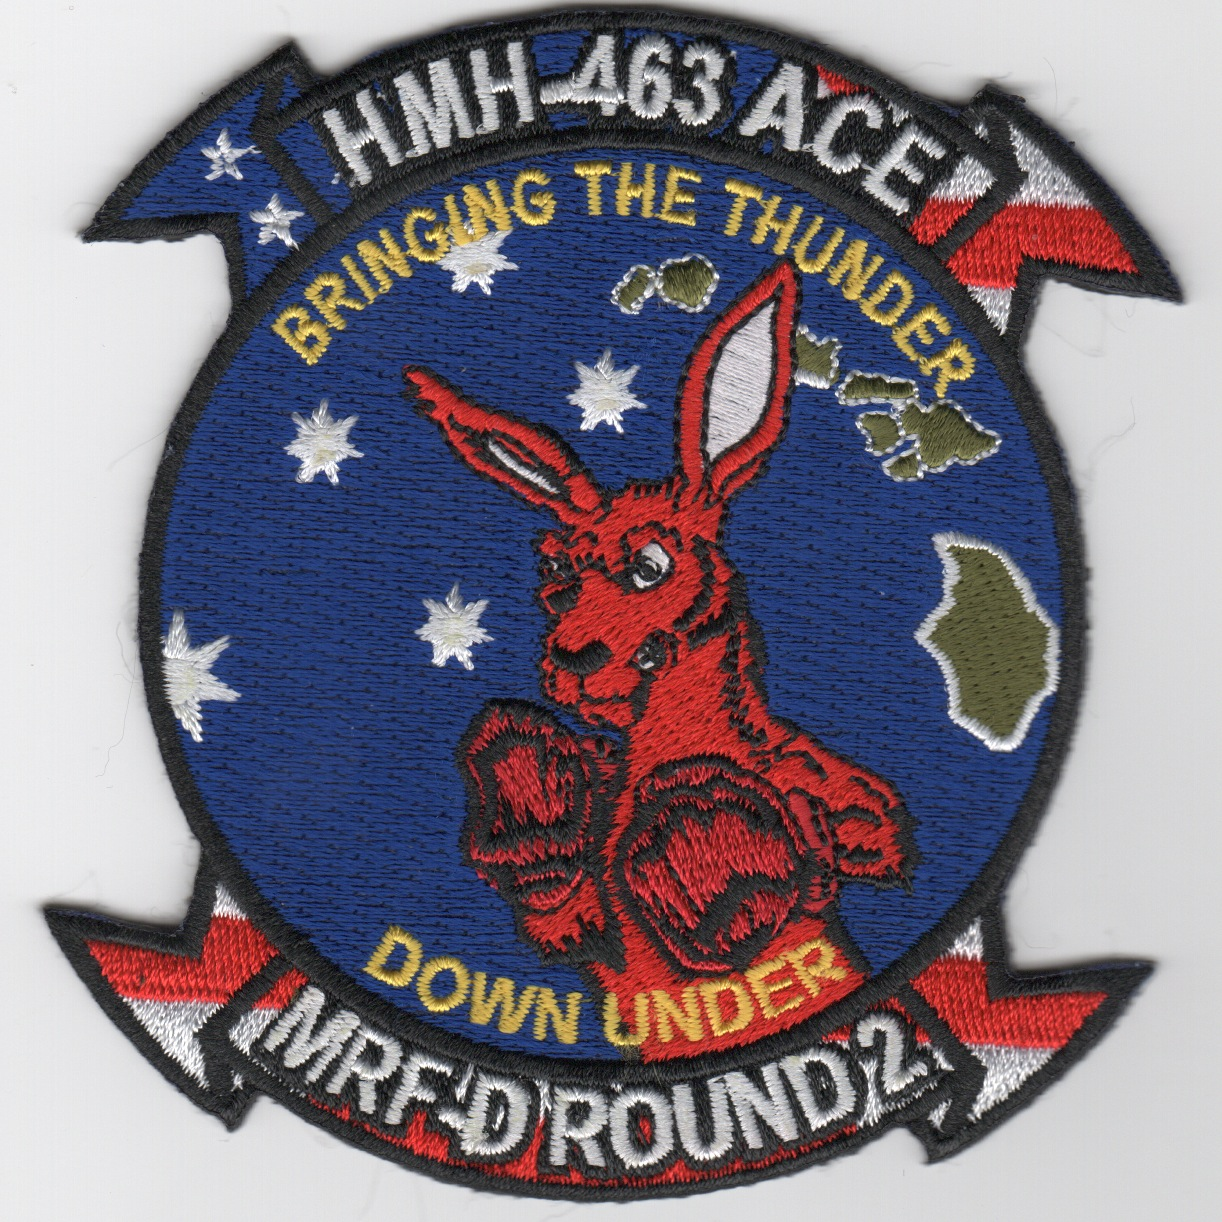 HMH-463 'Thunder Down Under' Patch